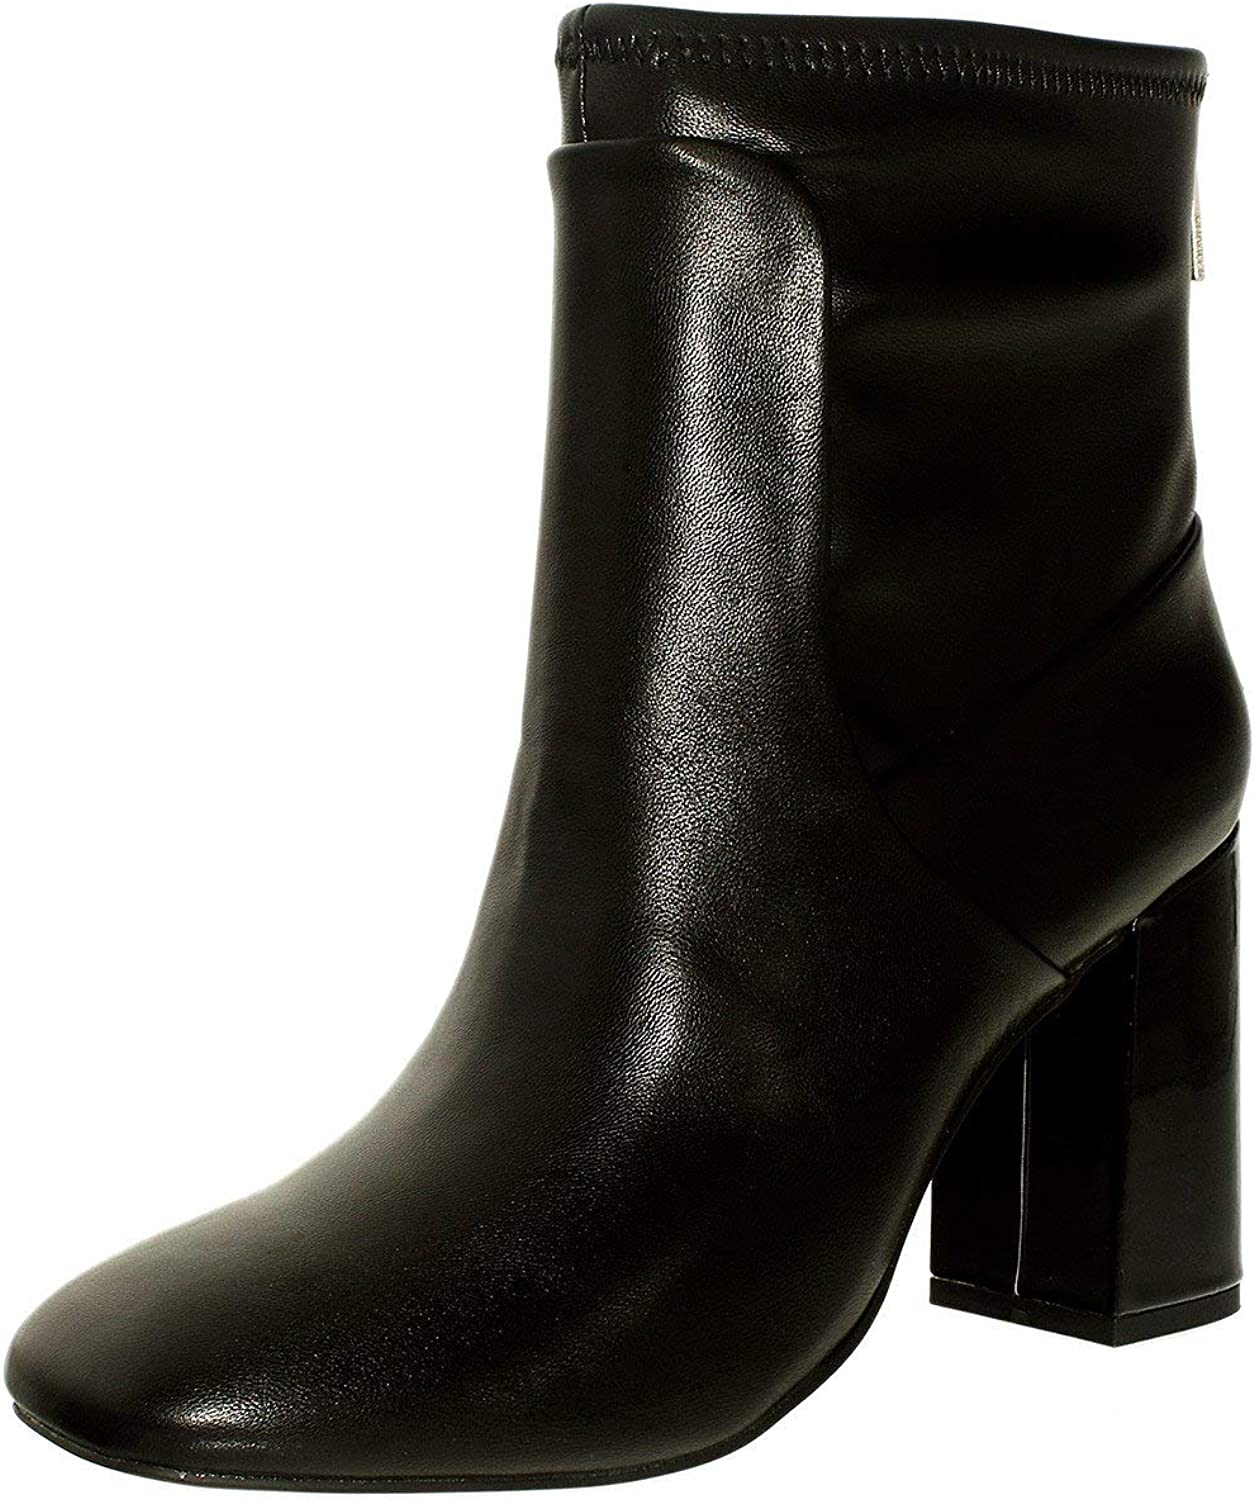 Charles By Charles David Women's Trudy Synthetic Ankle-High Leather Boot